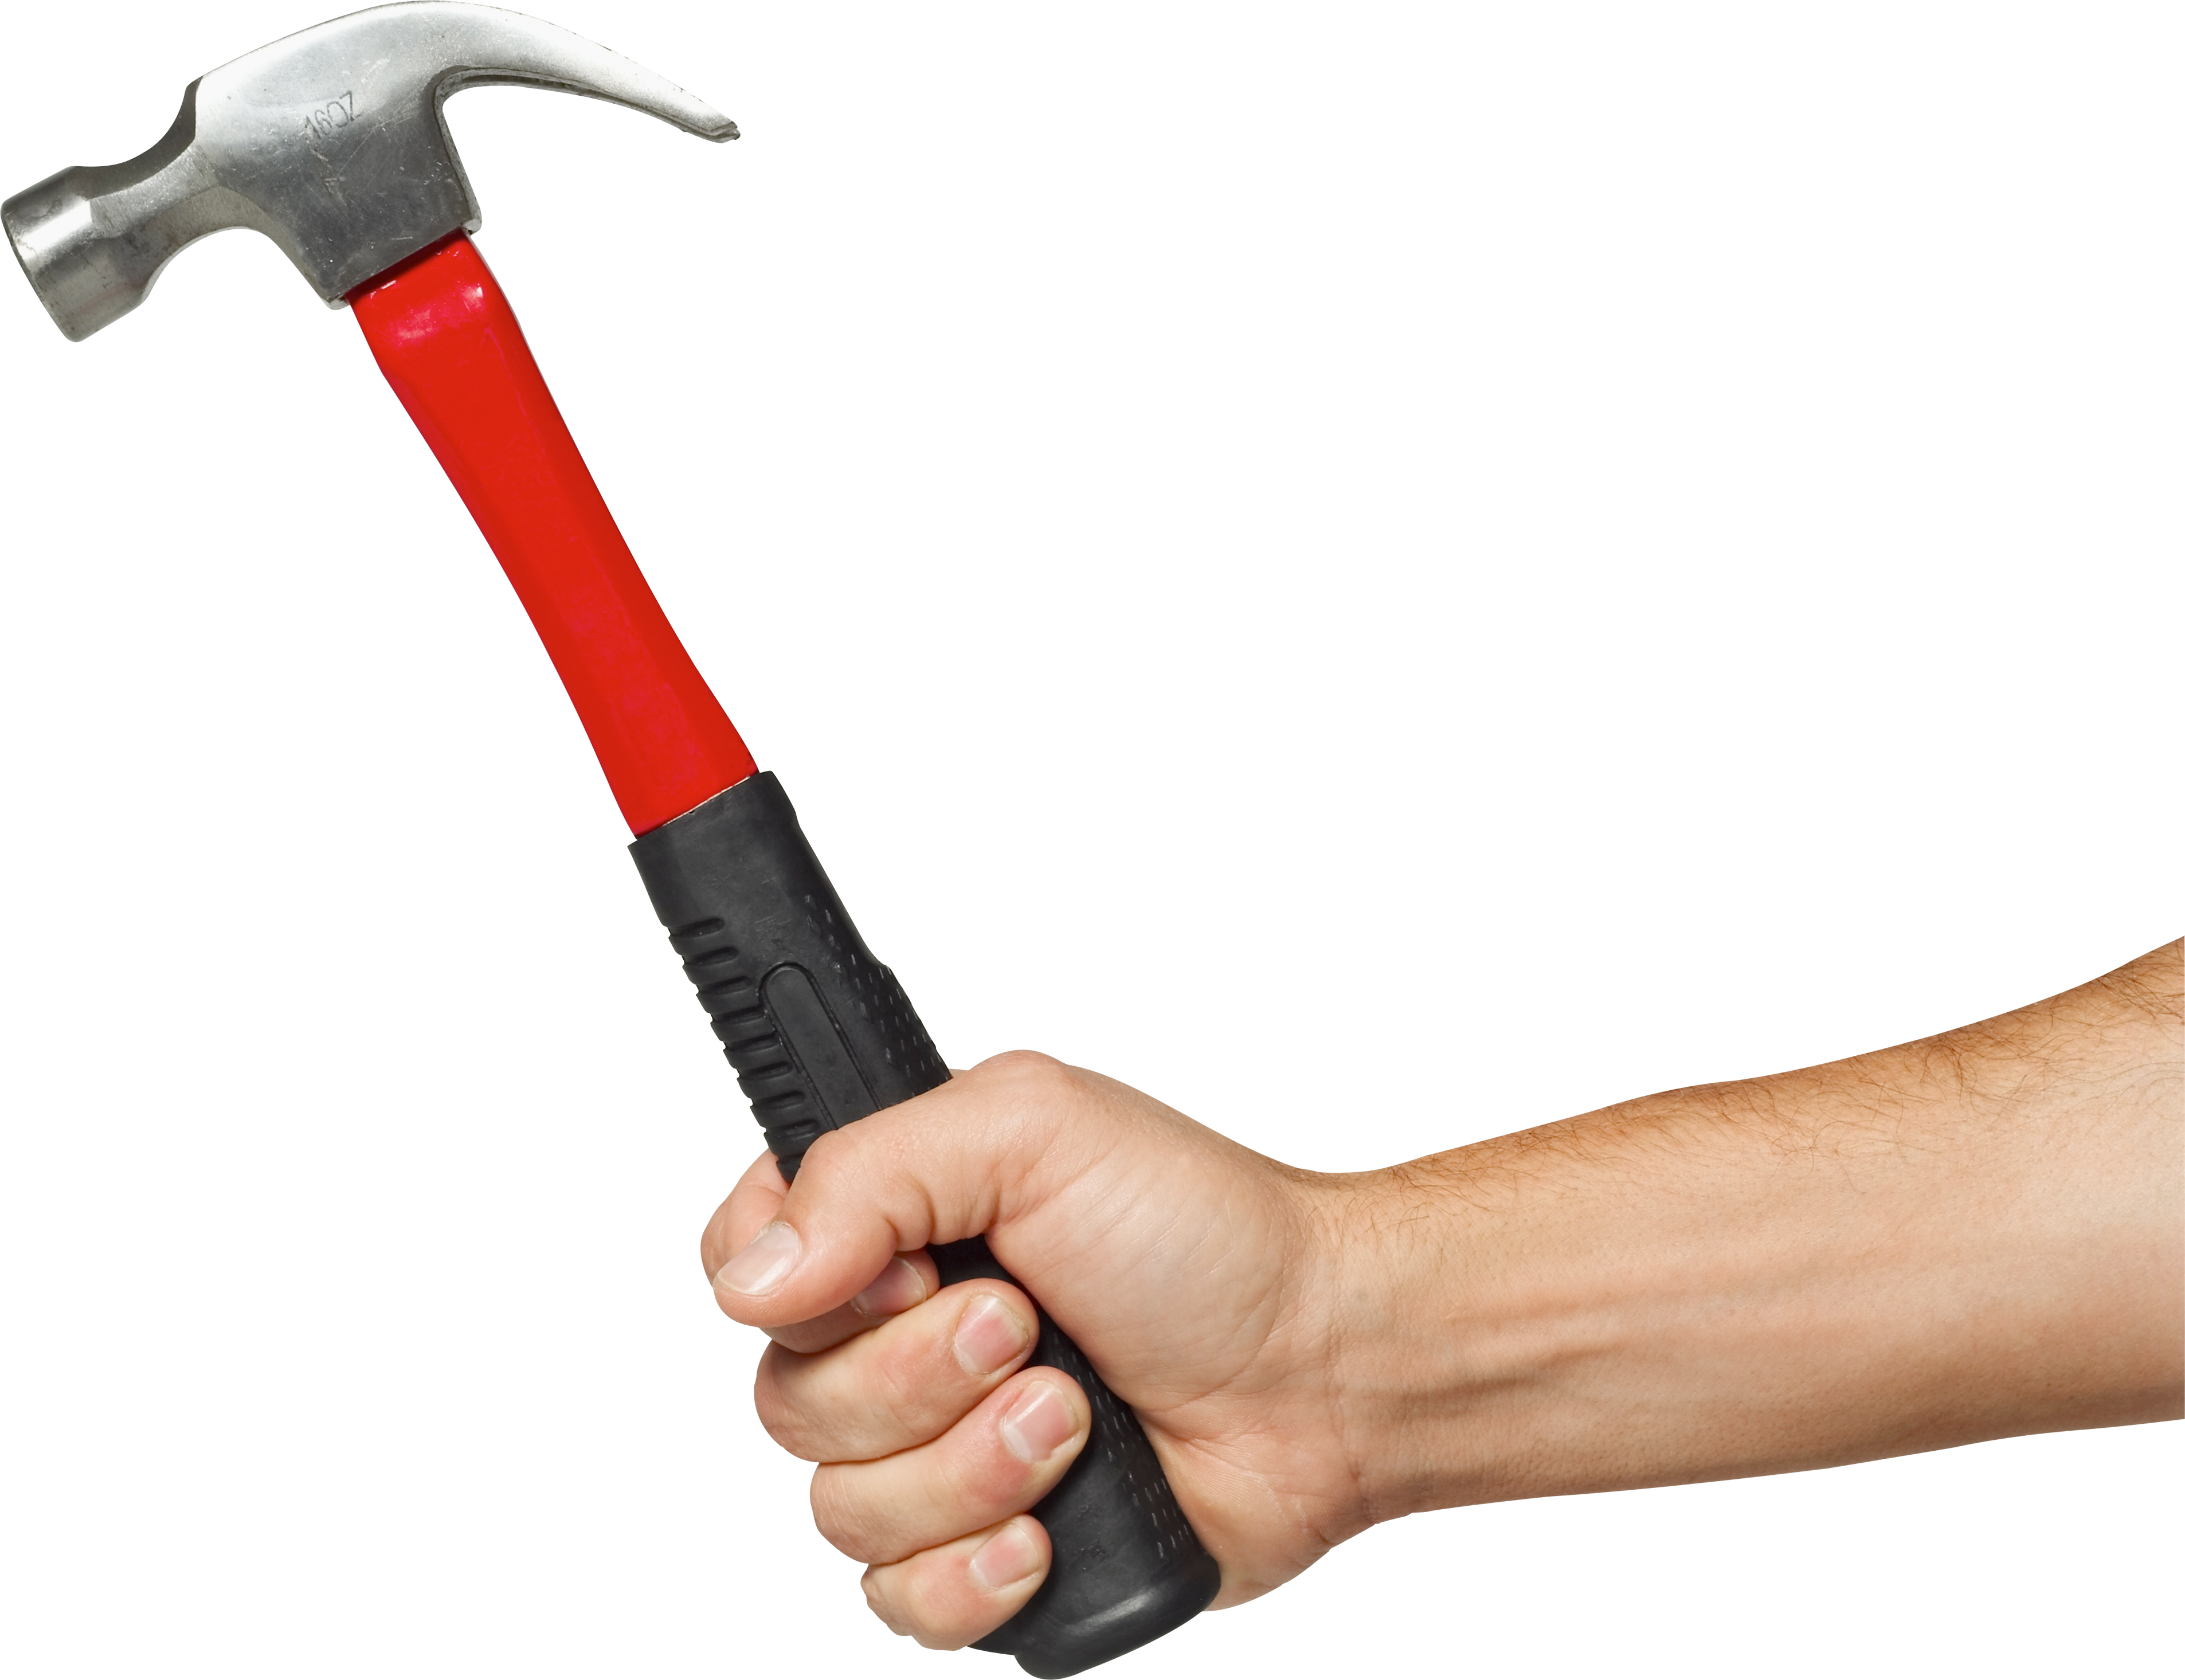 hammer_PNG3886.png